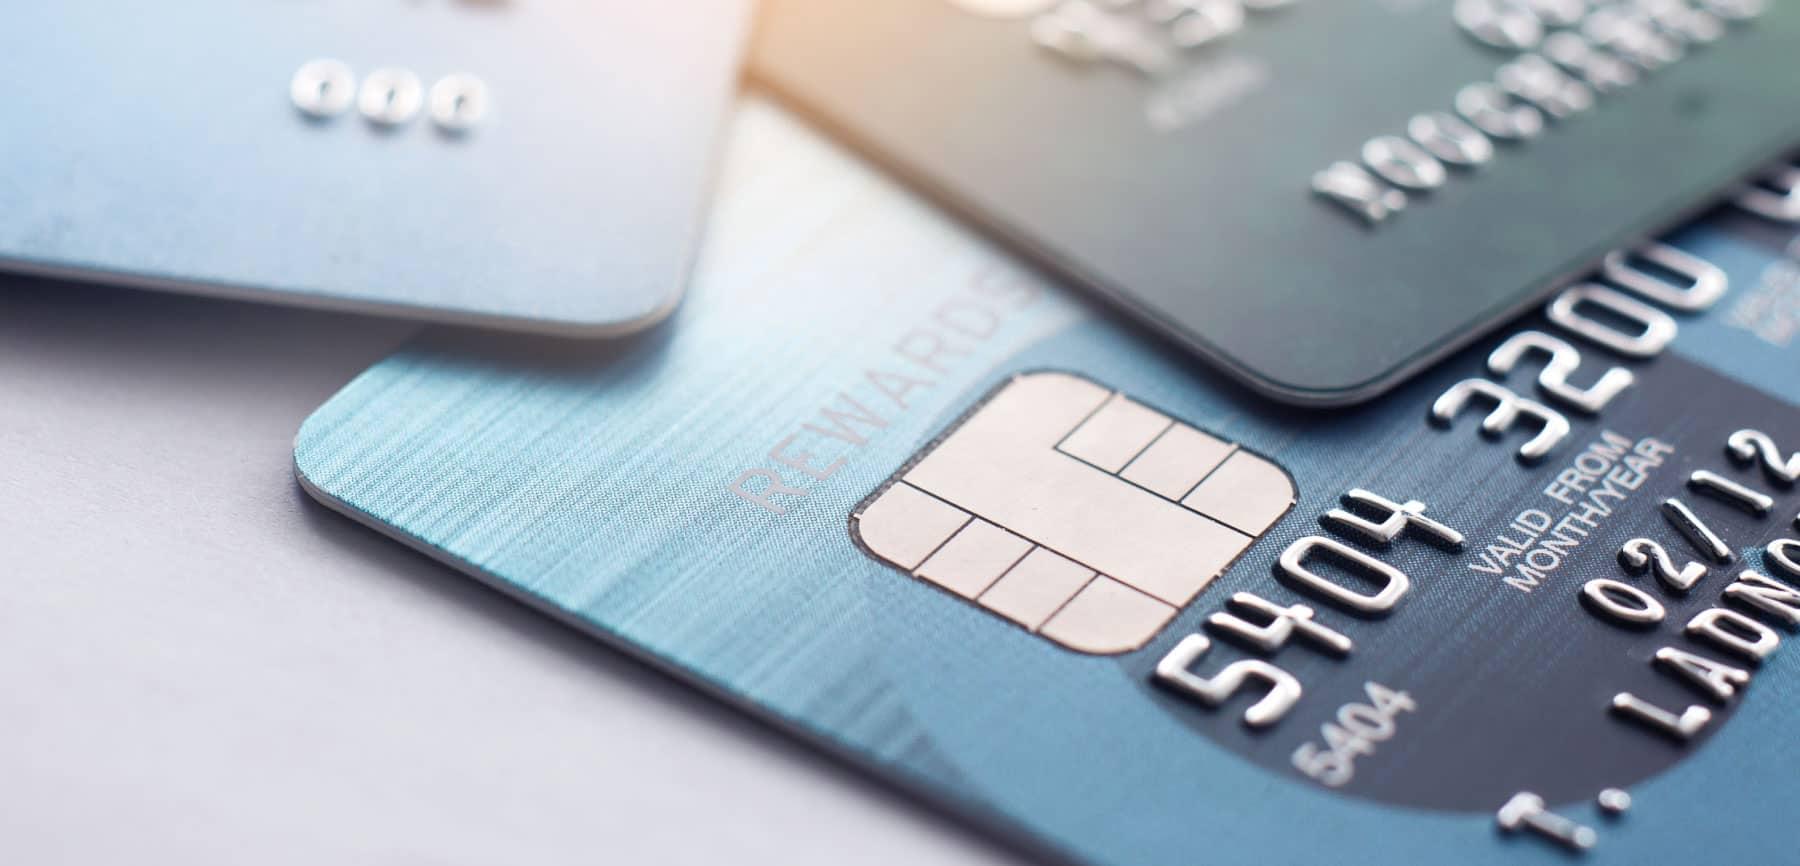 how to build credit without a credit card?